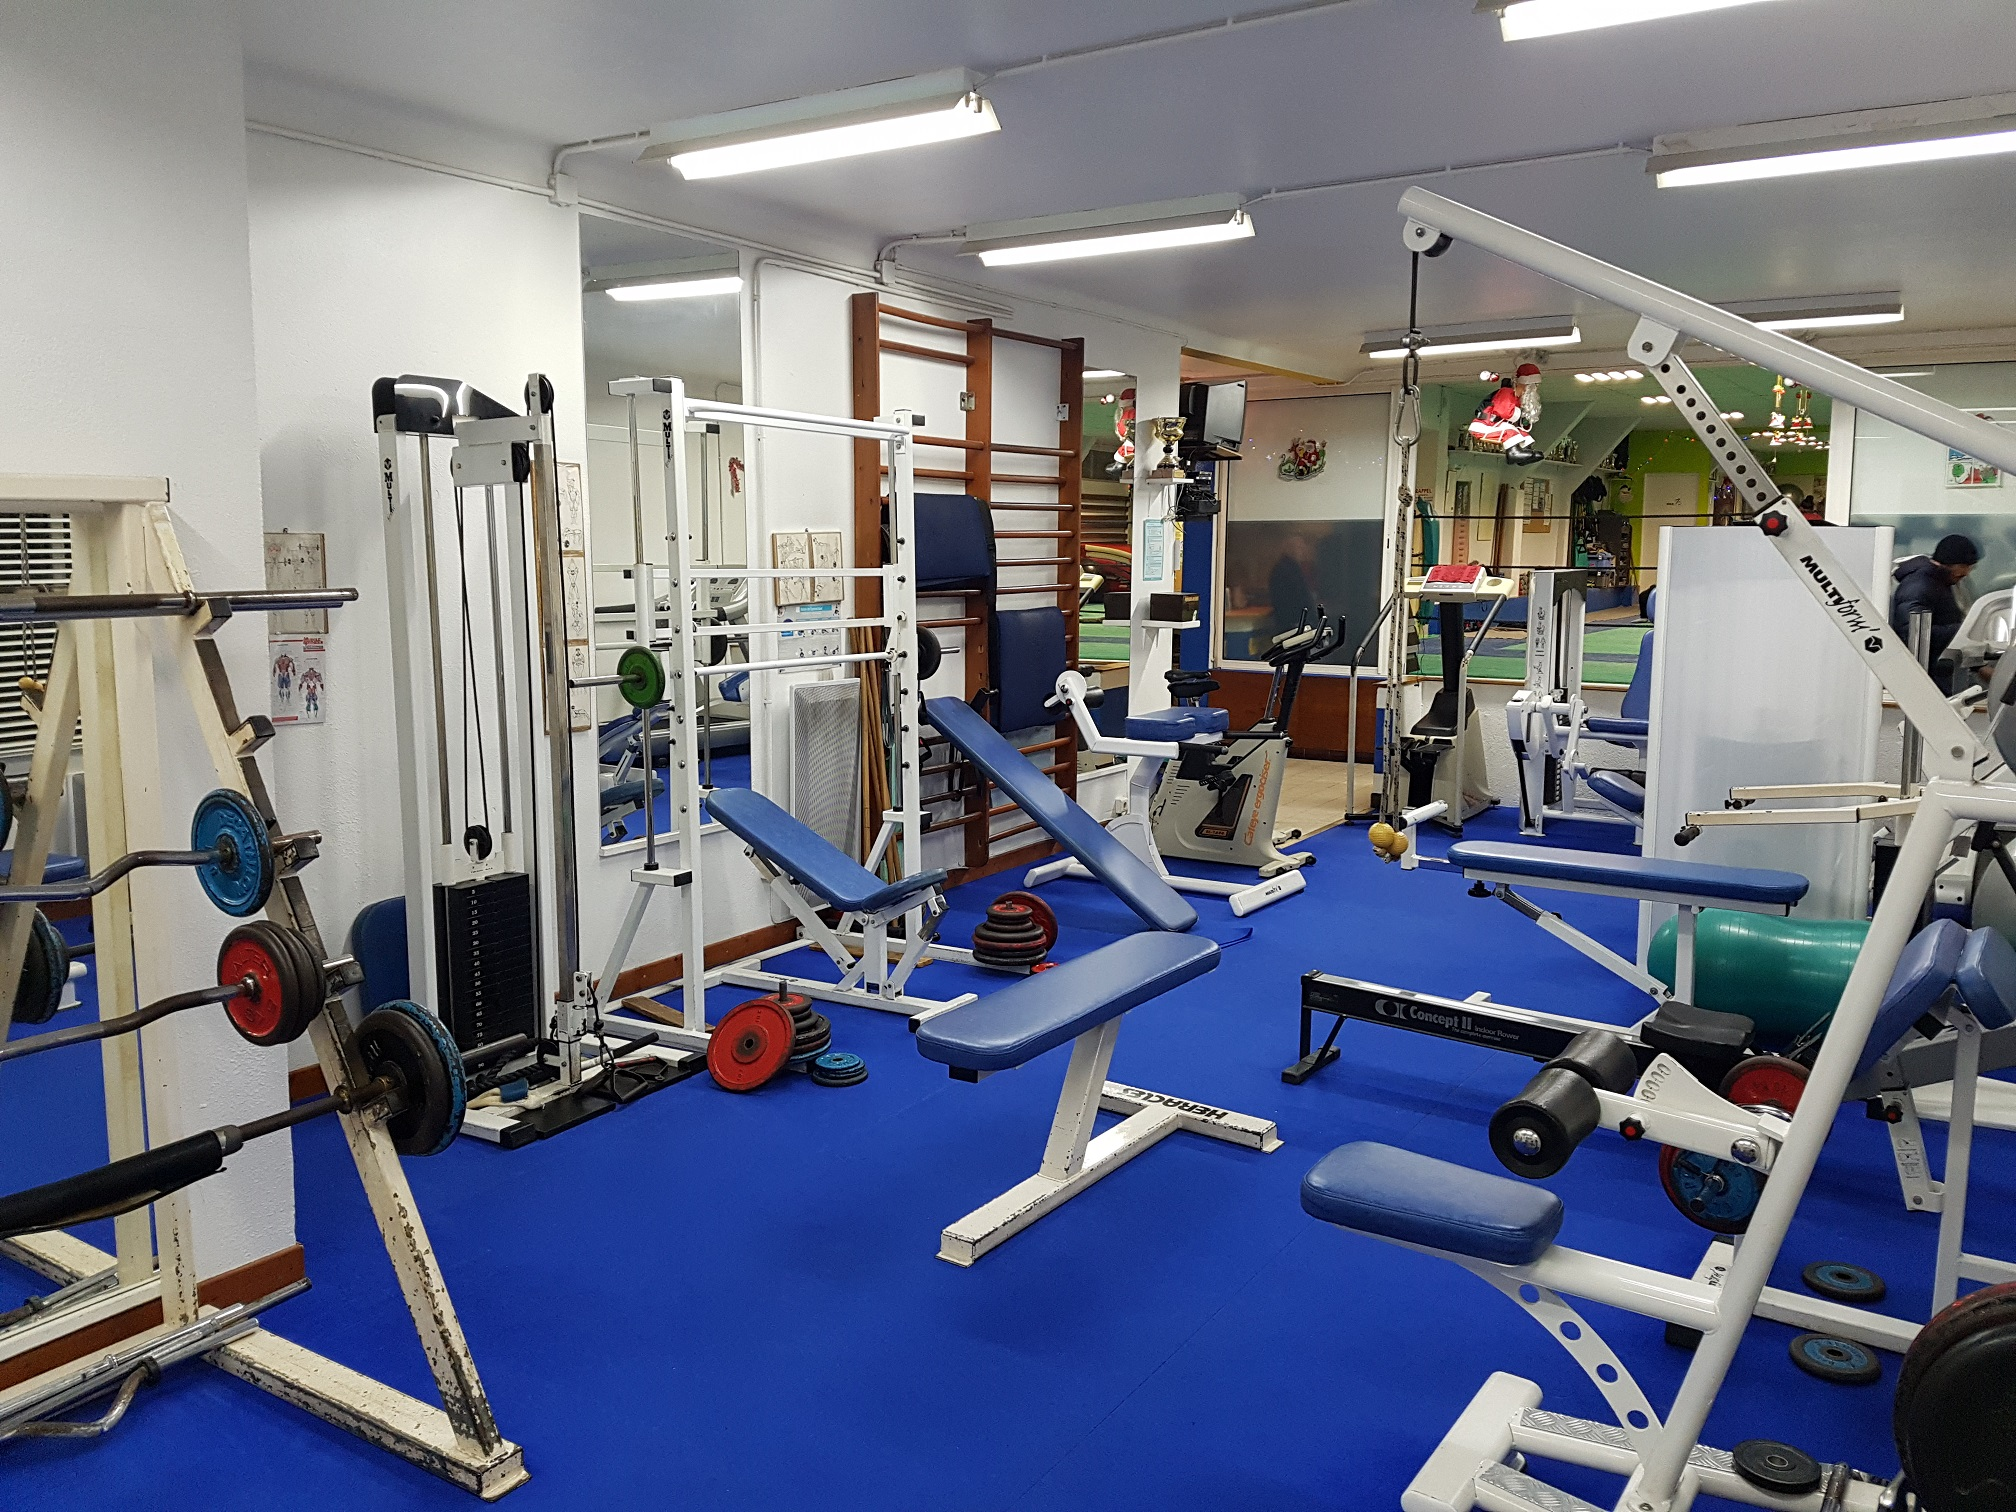 New Look Fitness - Espace cardio & musculation